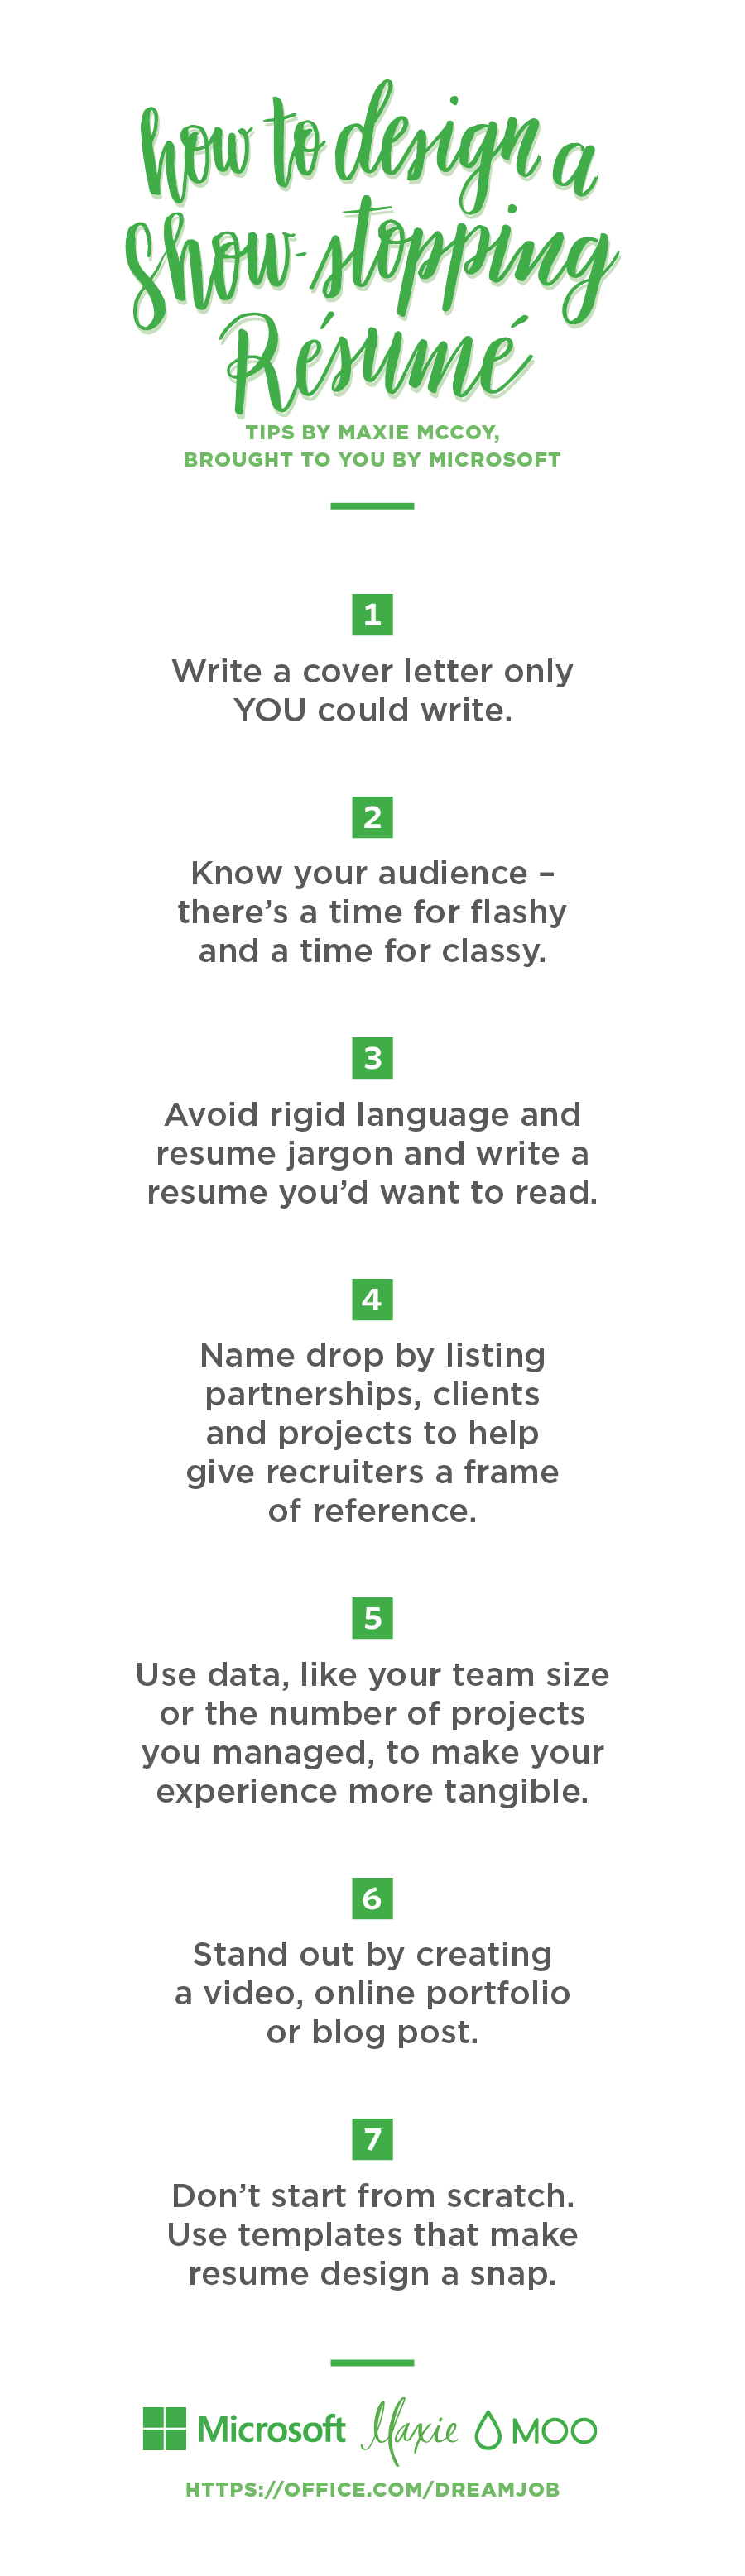 how to design a show stopping resume microsoft 365 blog